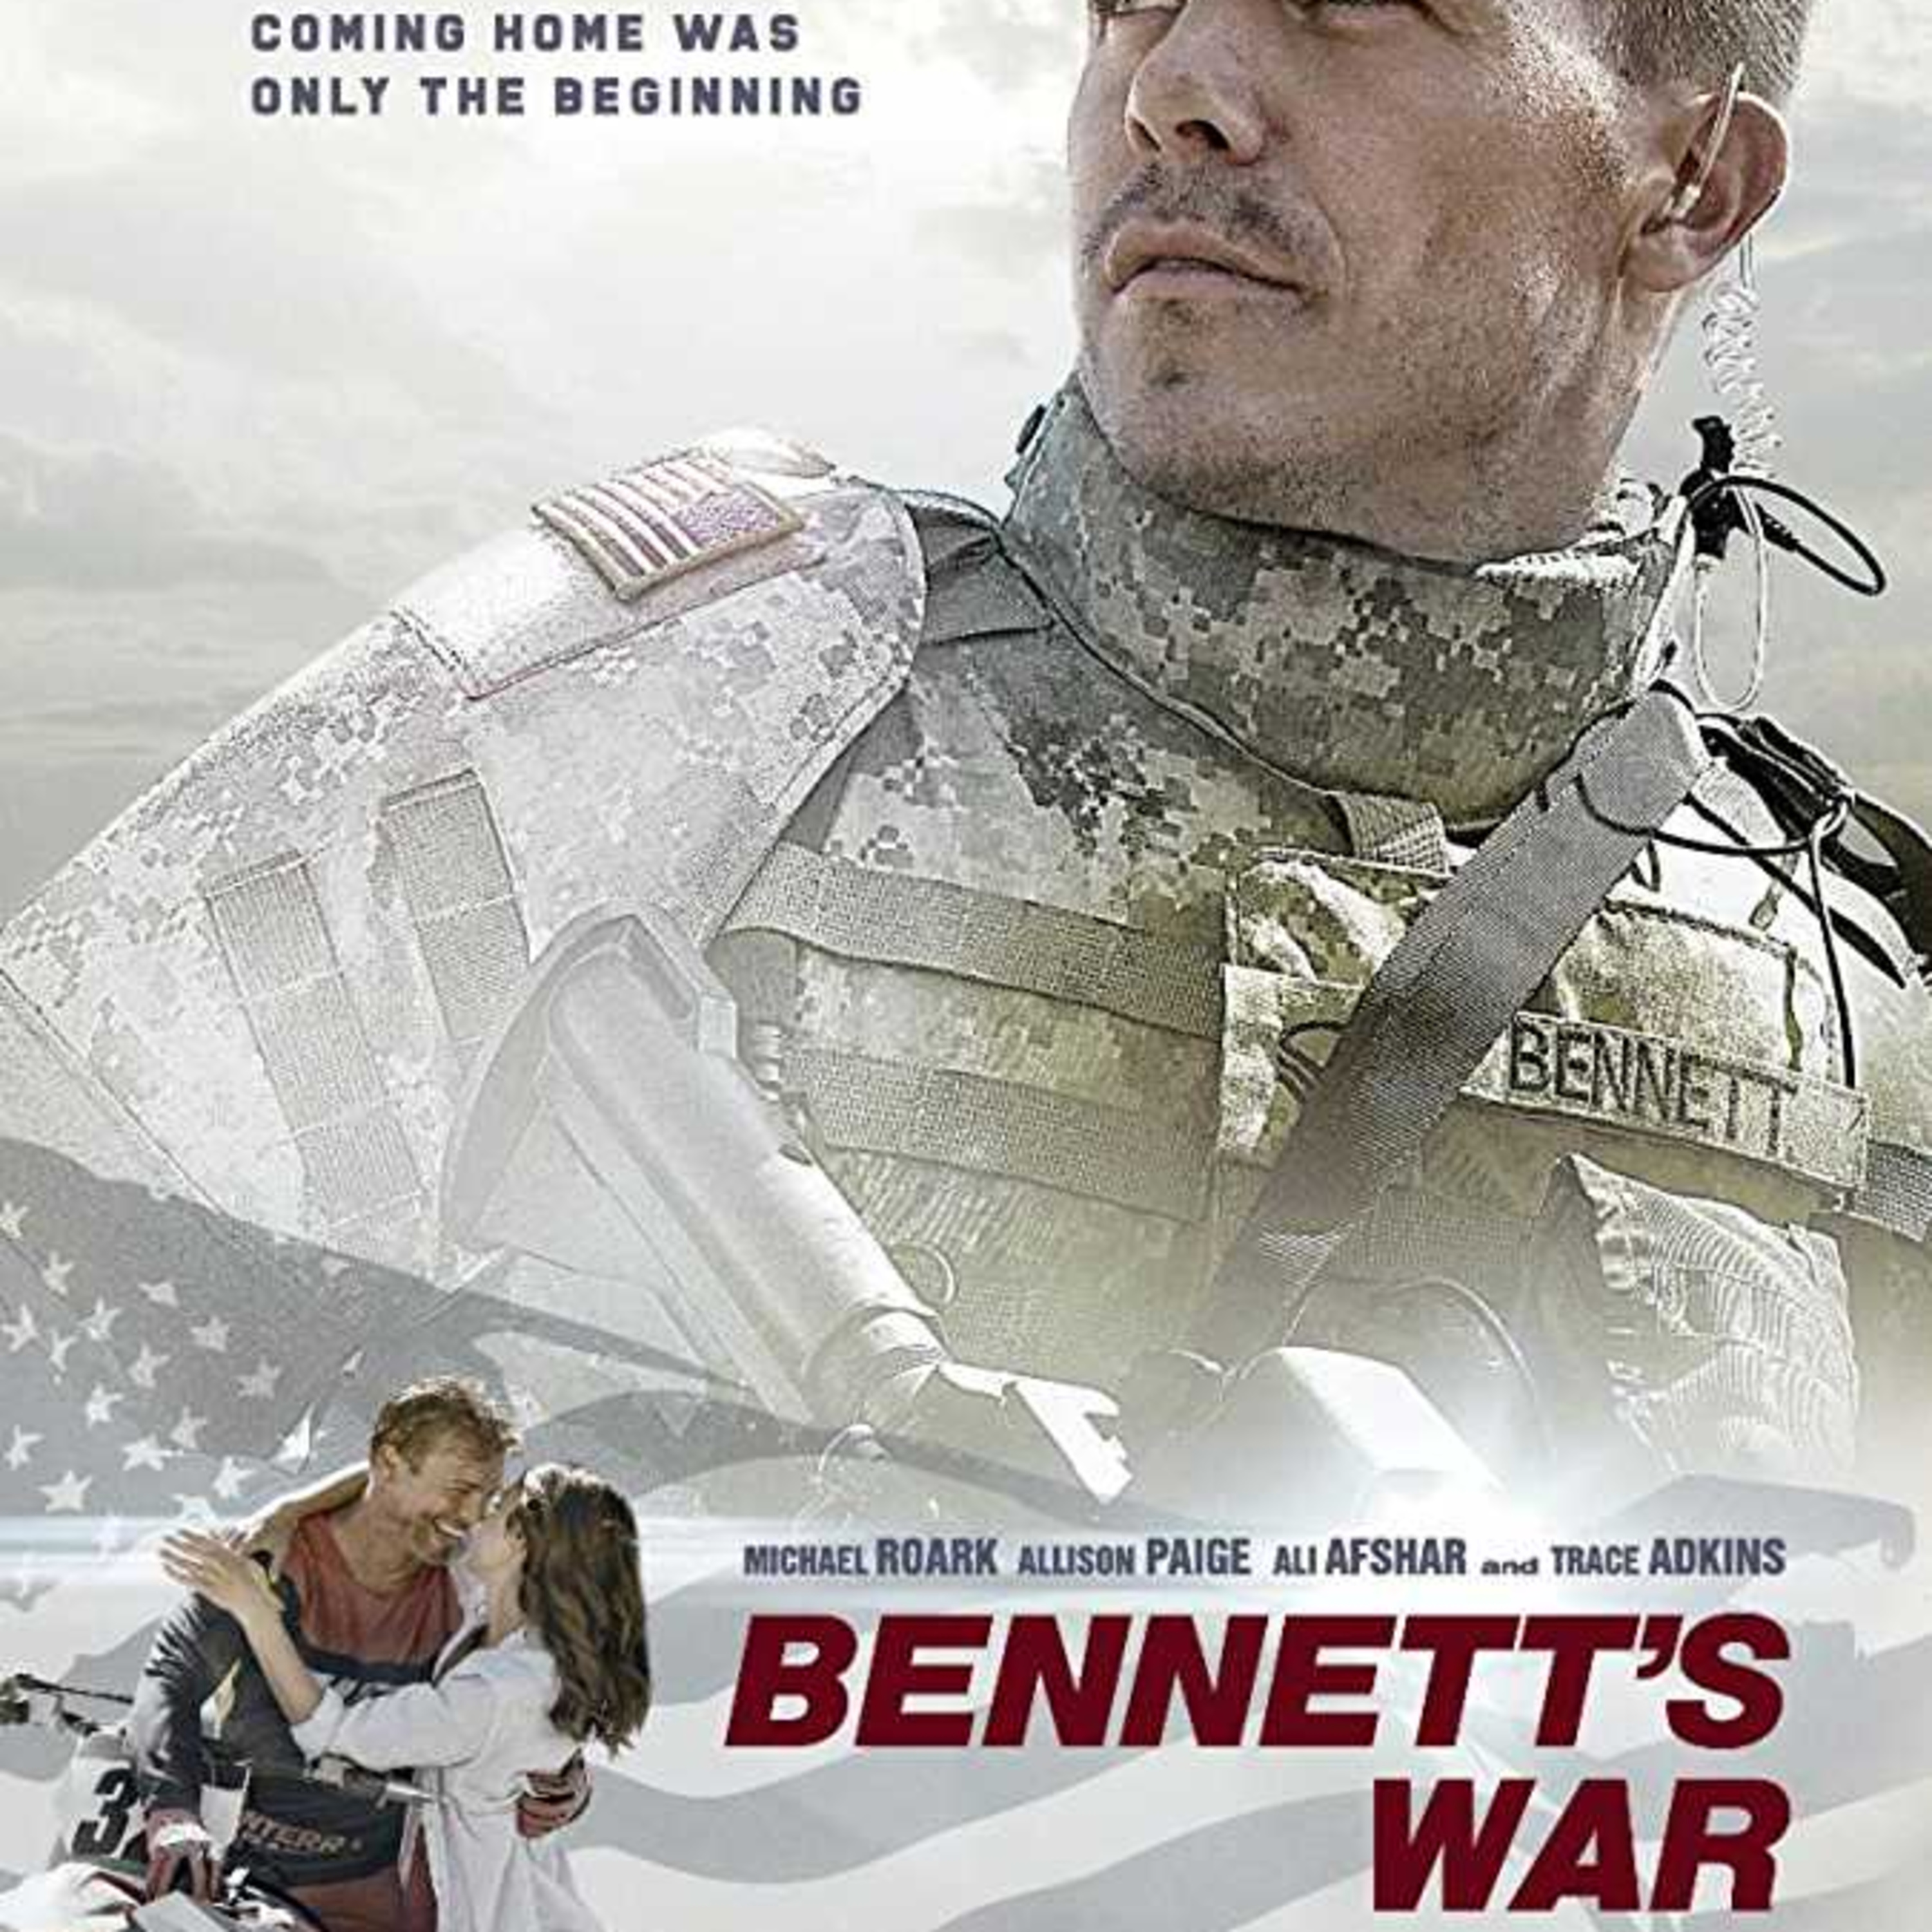 Descarga gratis streaming película Bennett's War 2019 descargasmix estrenos